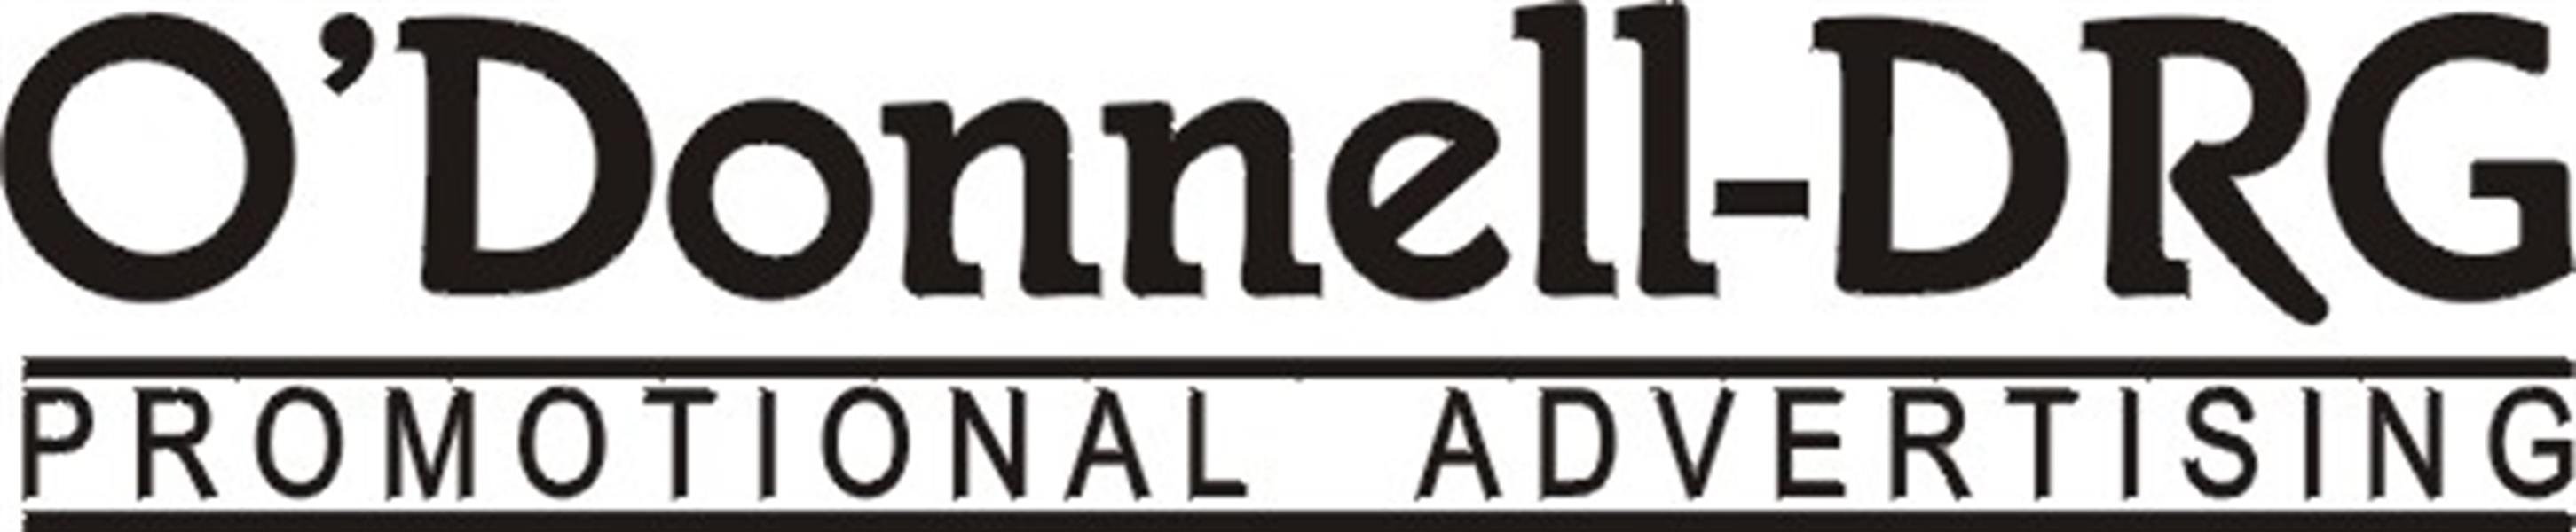 O'Donnell-DRG Promotional Advertising